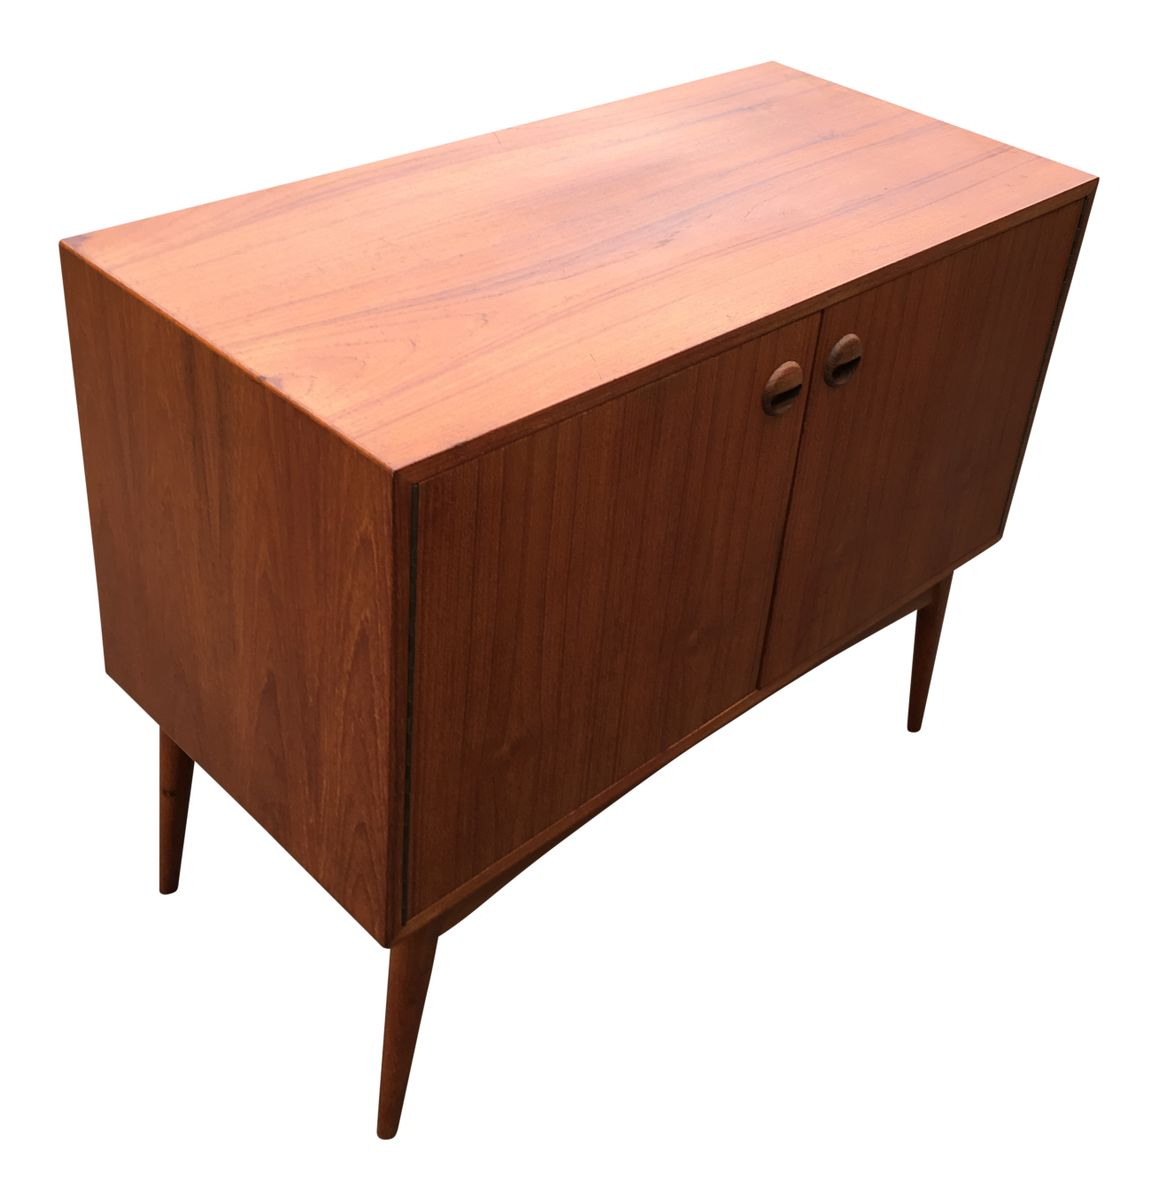 Vintage Teak Cabinet With Drawers For Sale At Pamono